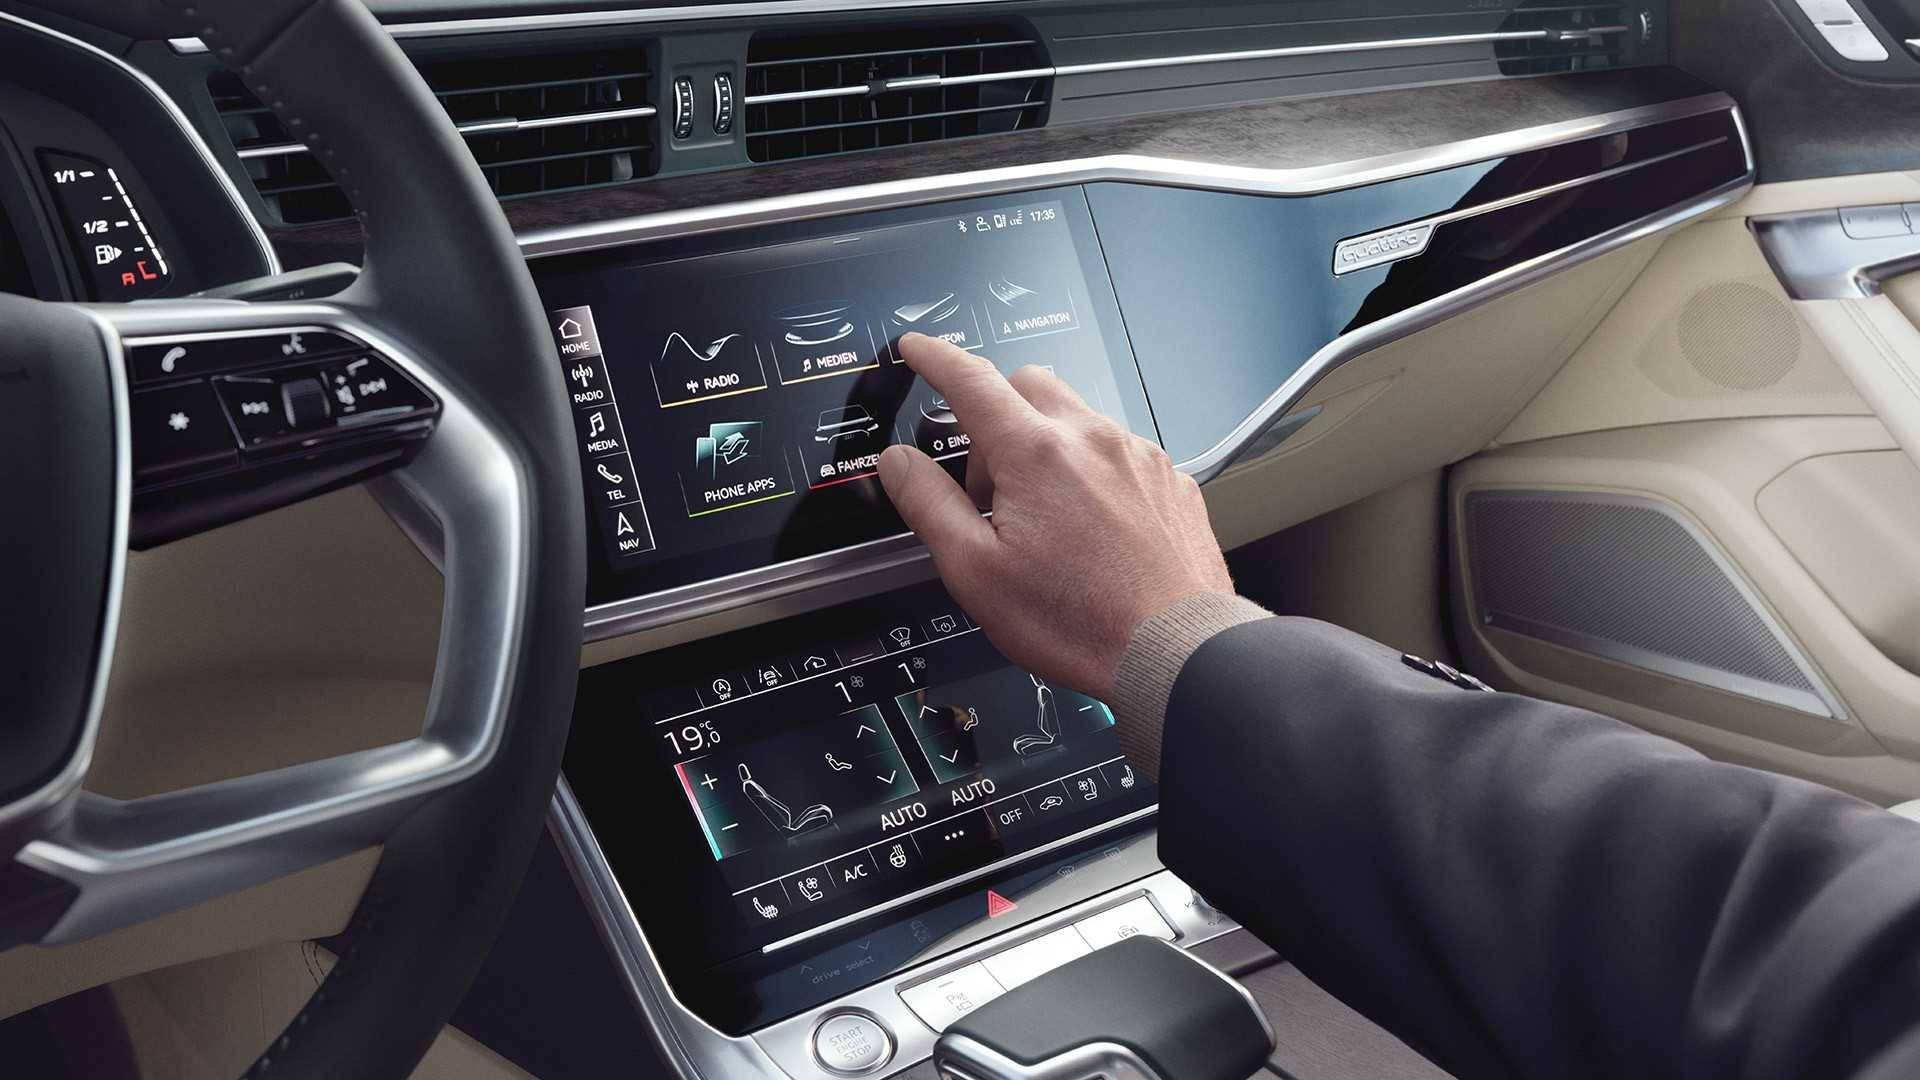 Audi A6 Berline 2018 Tactile multimedia